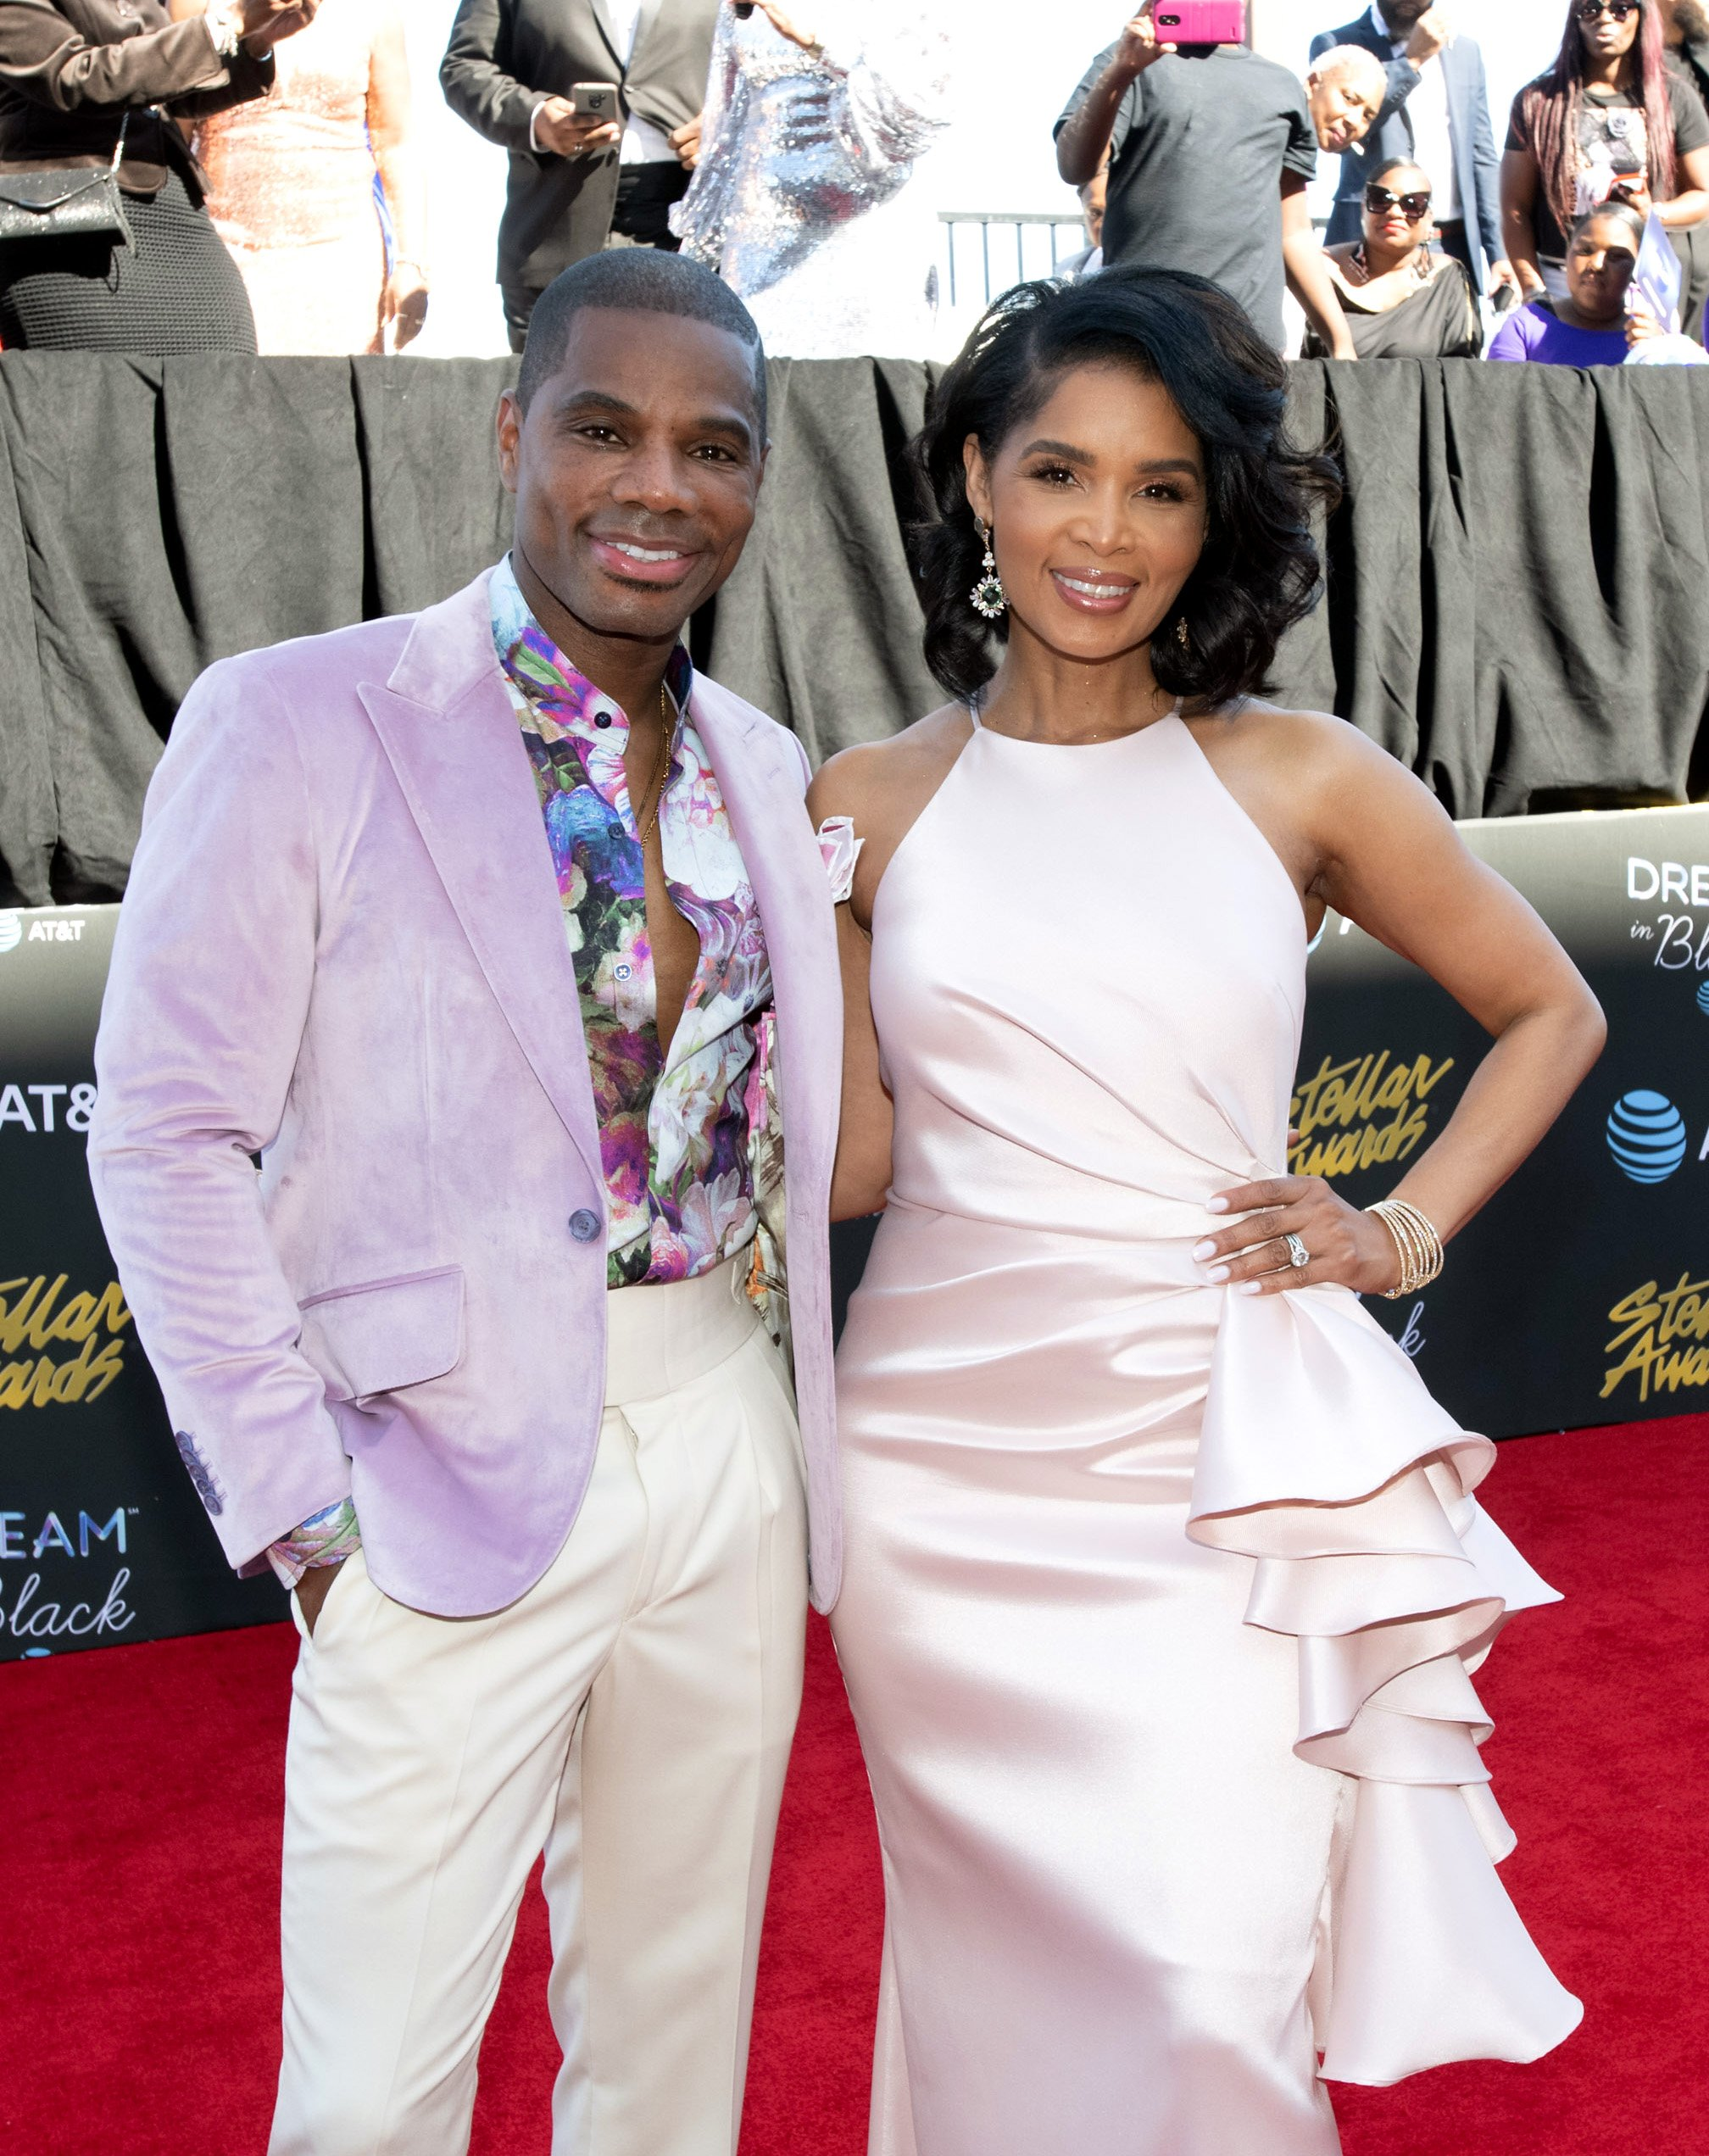 Kirk Franklin and his wife Tammy Franklin appearing at the 34th annual Stellar Gospel Music Awards on March 29, 2019.   Photo: Getty Images